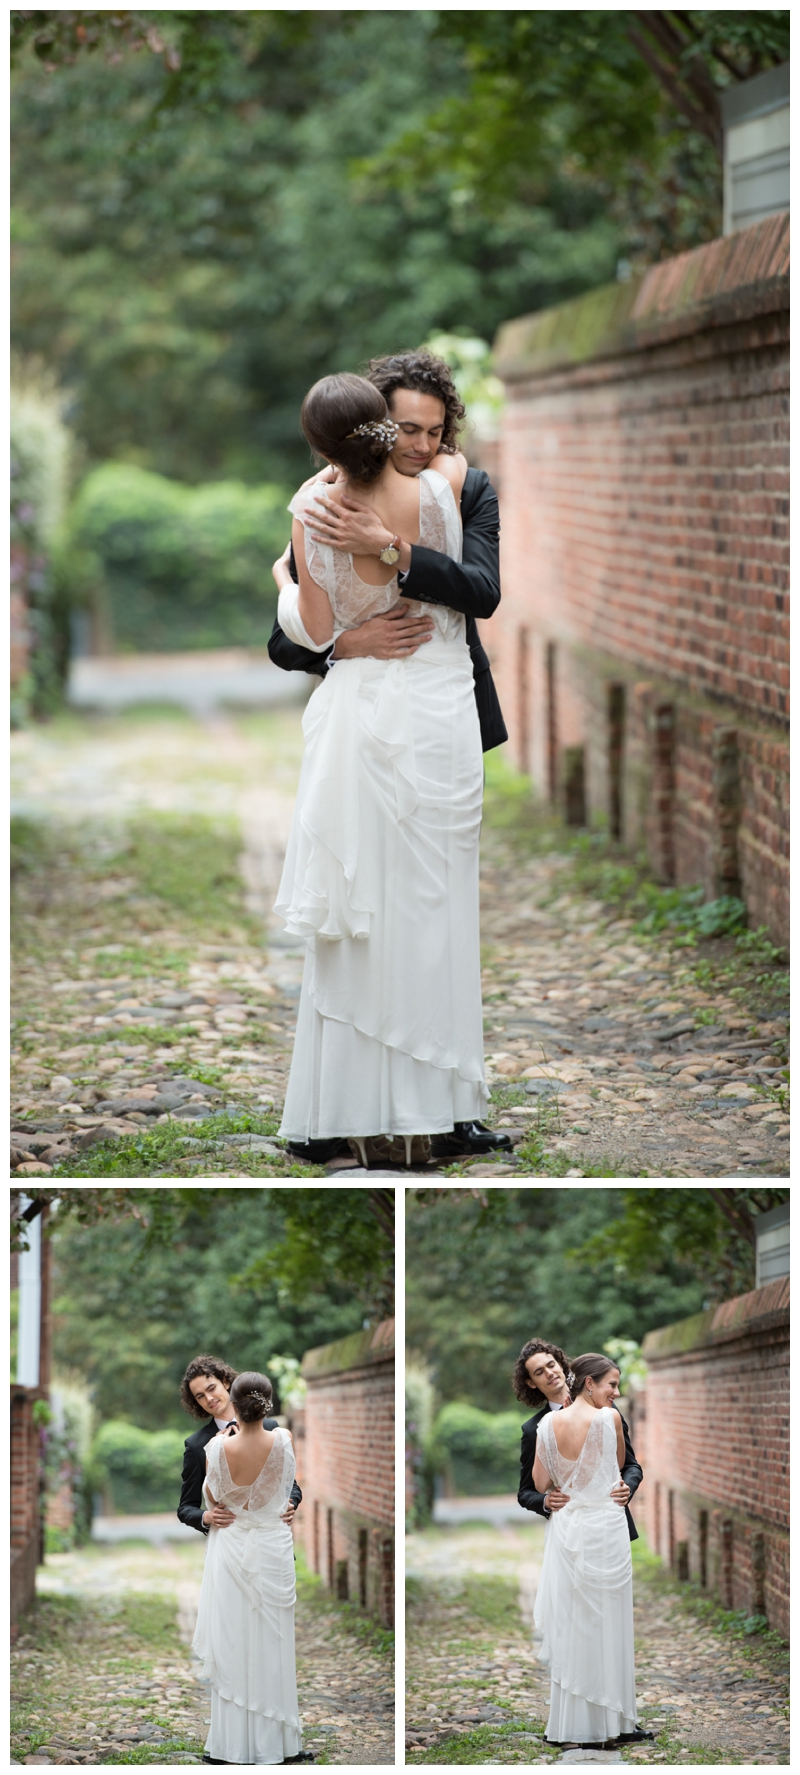 Wedding in Old Town Alexandria Virginia at the Torpedo Factory Art Center by Rachael Foster Photography_0035.jpg